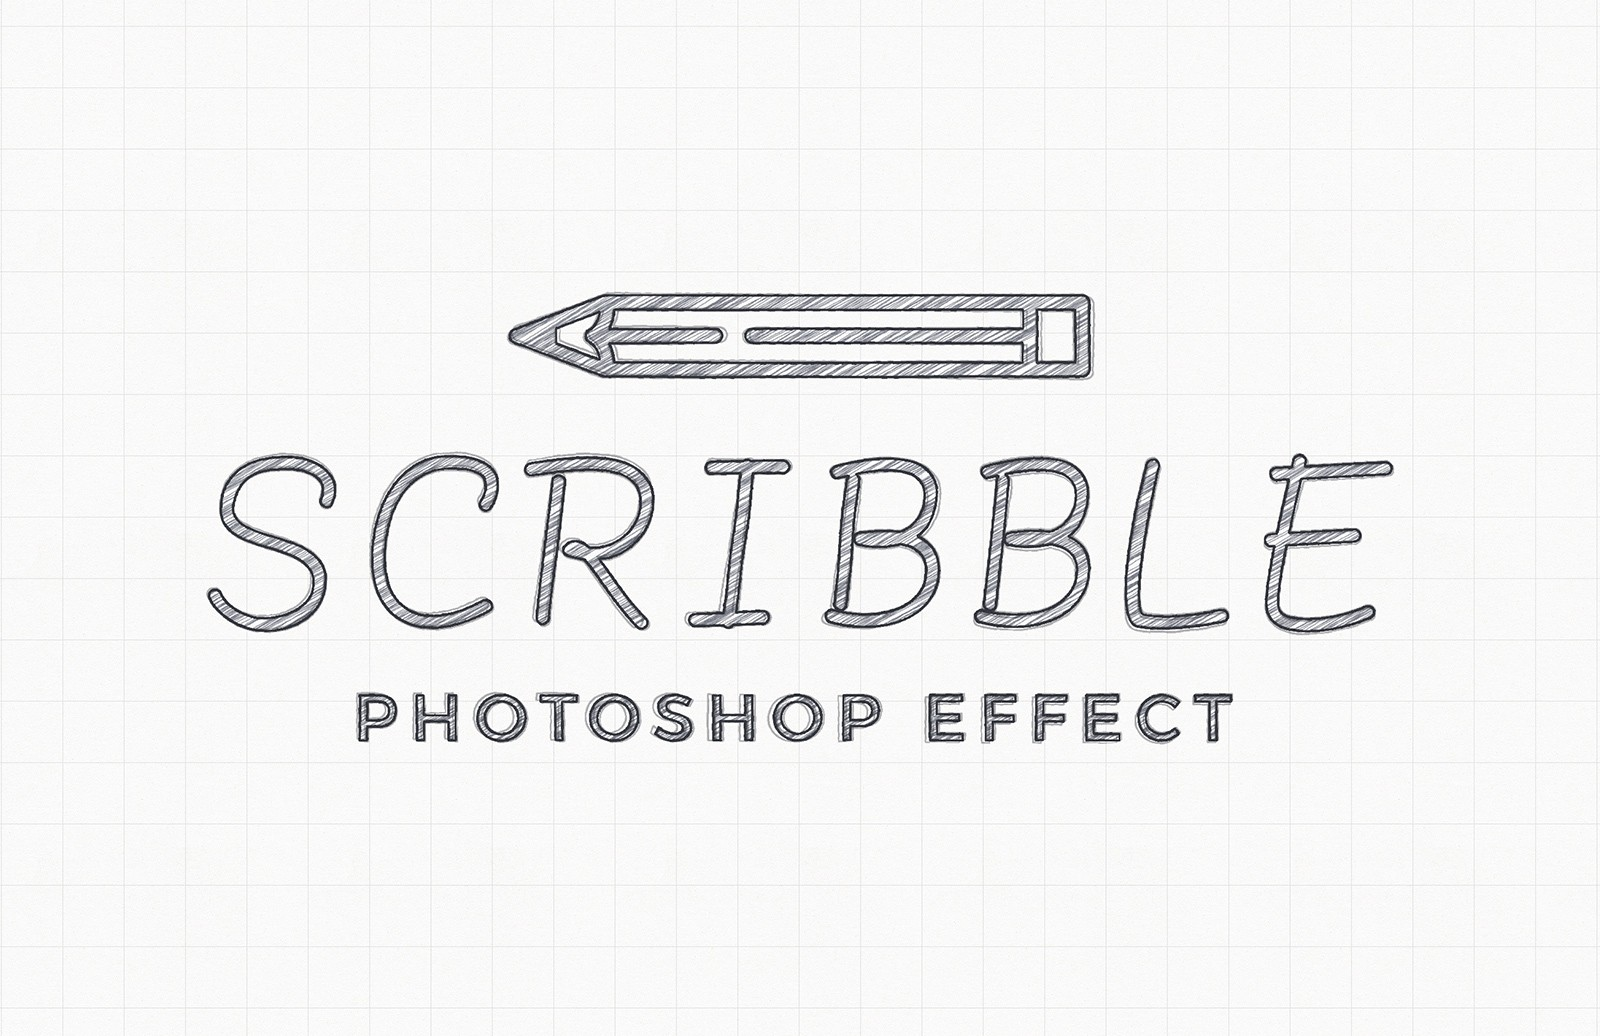 Scribble Photoshop Effect Mockup